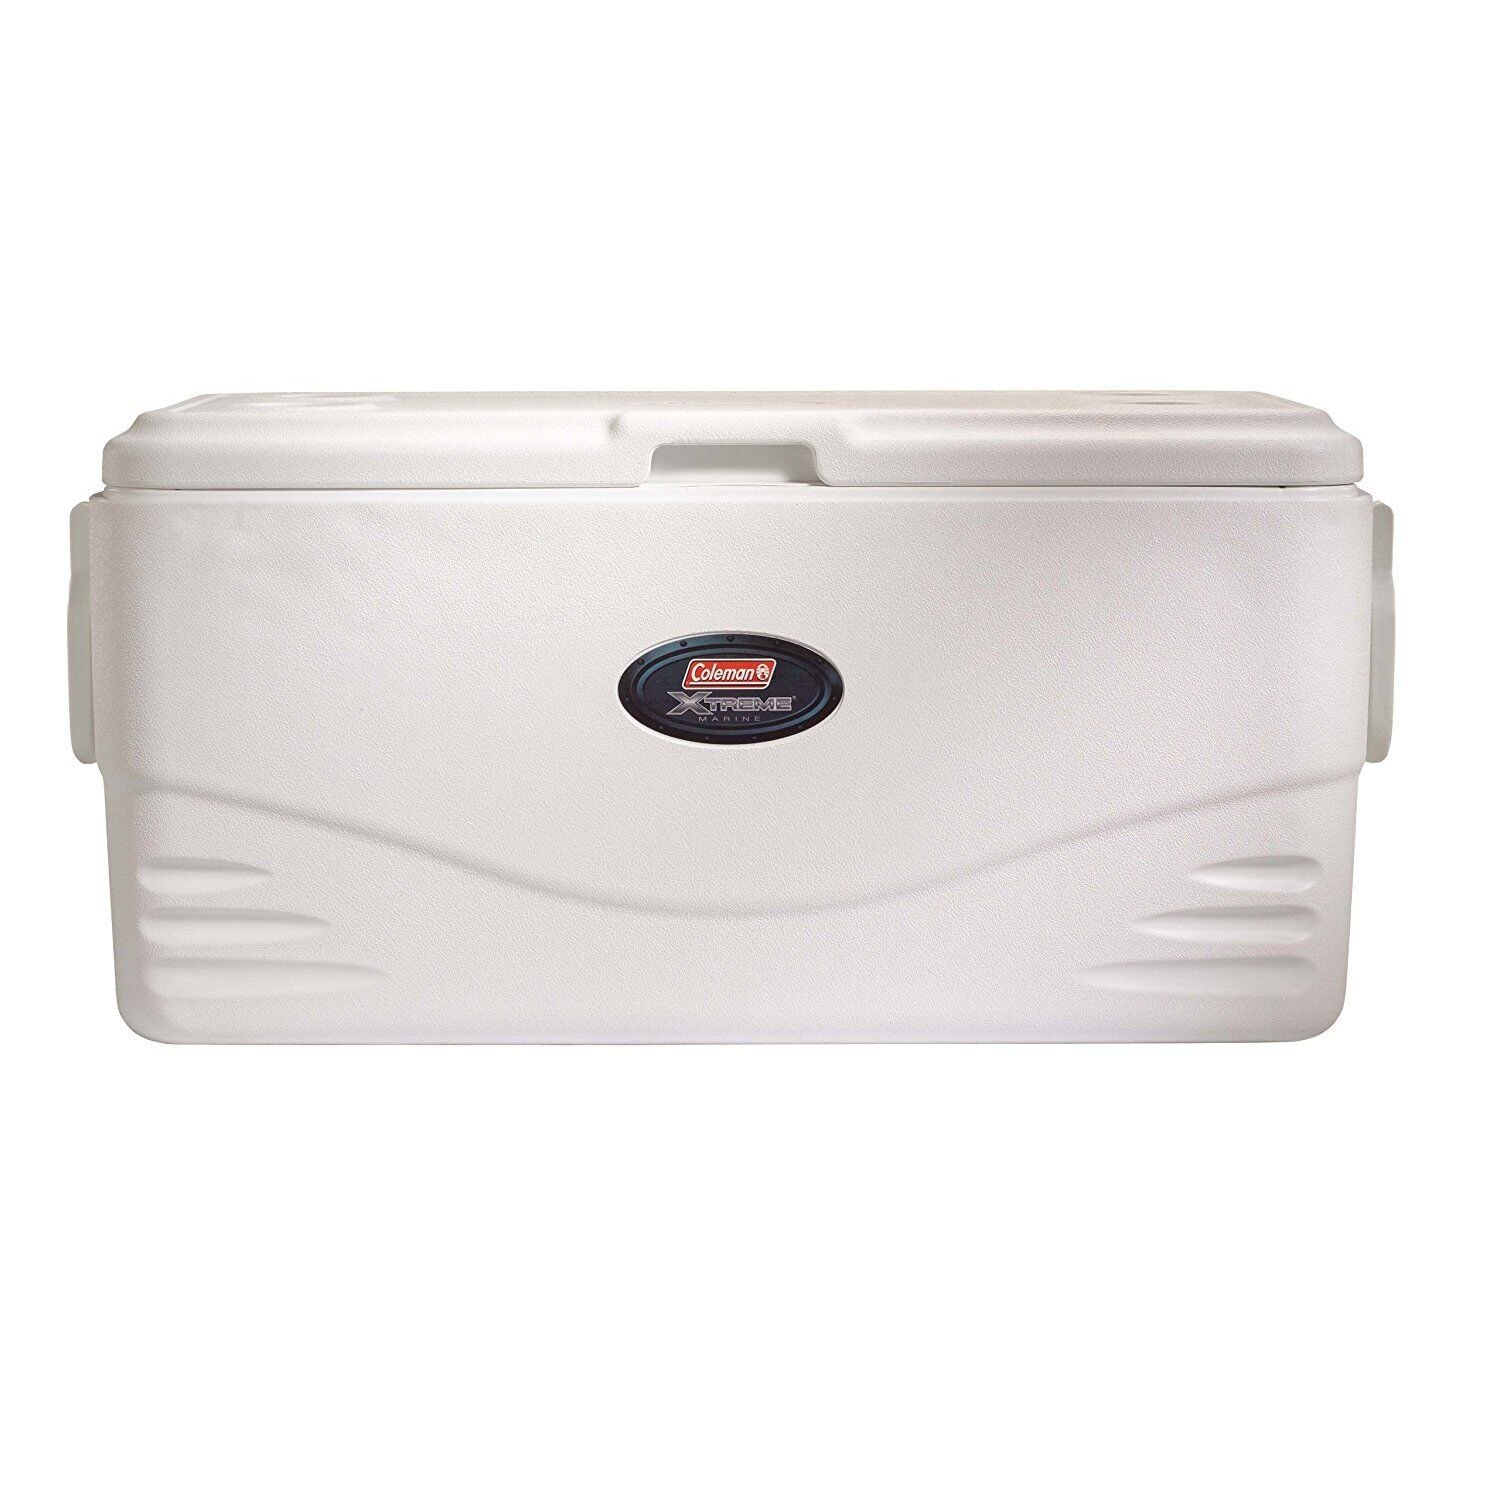 100Qt White Marine Cooler 164 Can Drink Storage Insulated Ice Chest Camping New